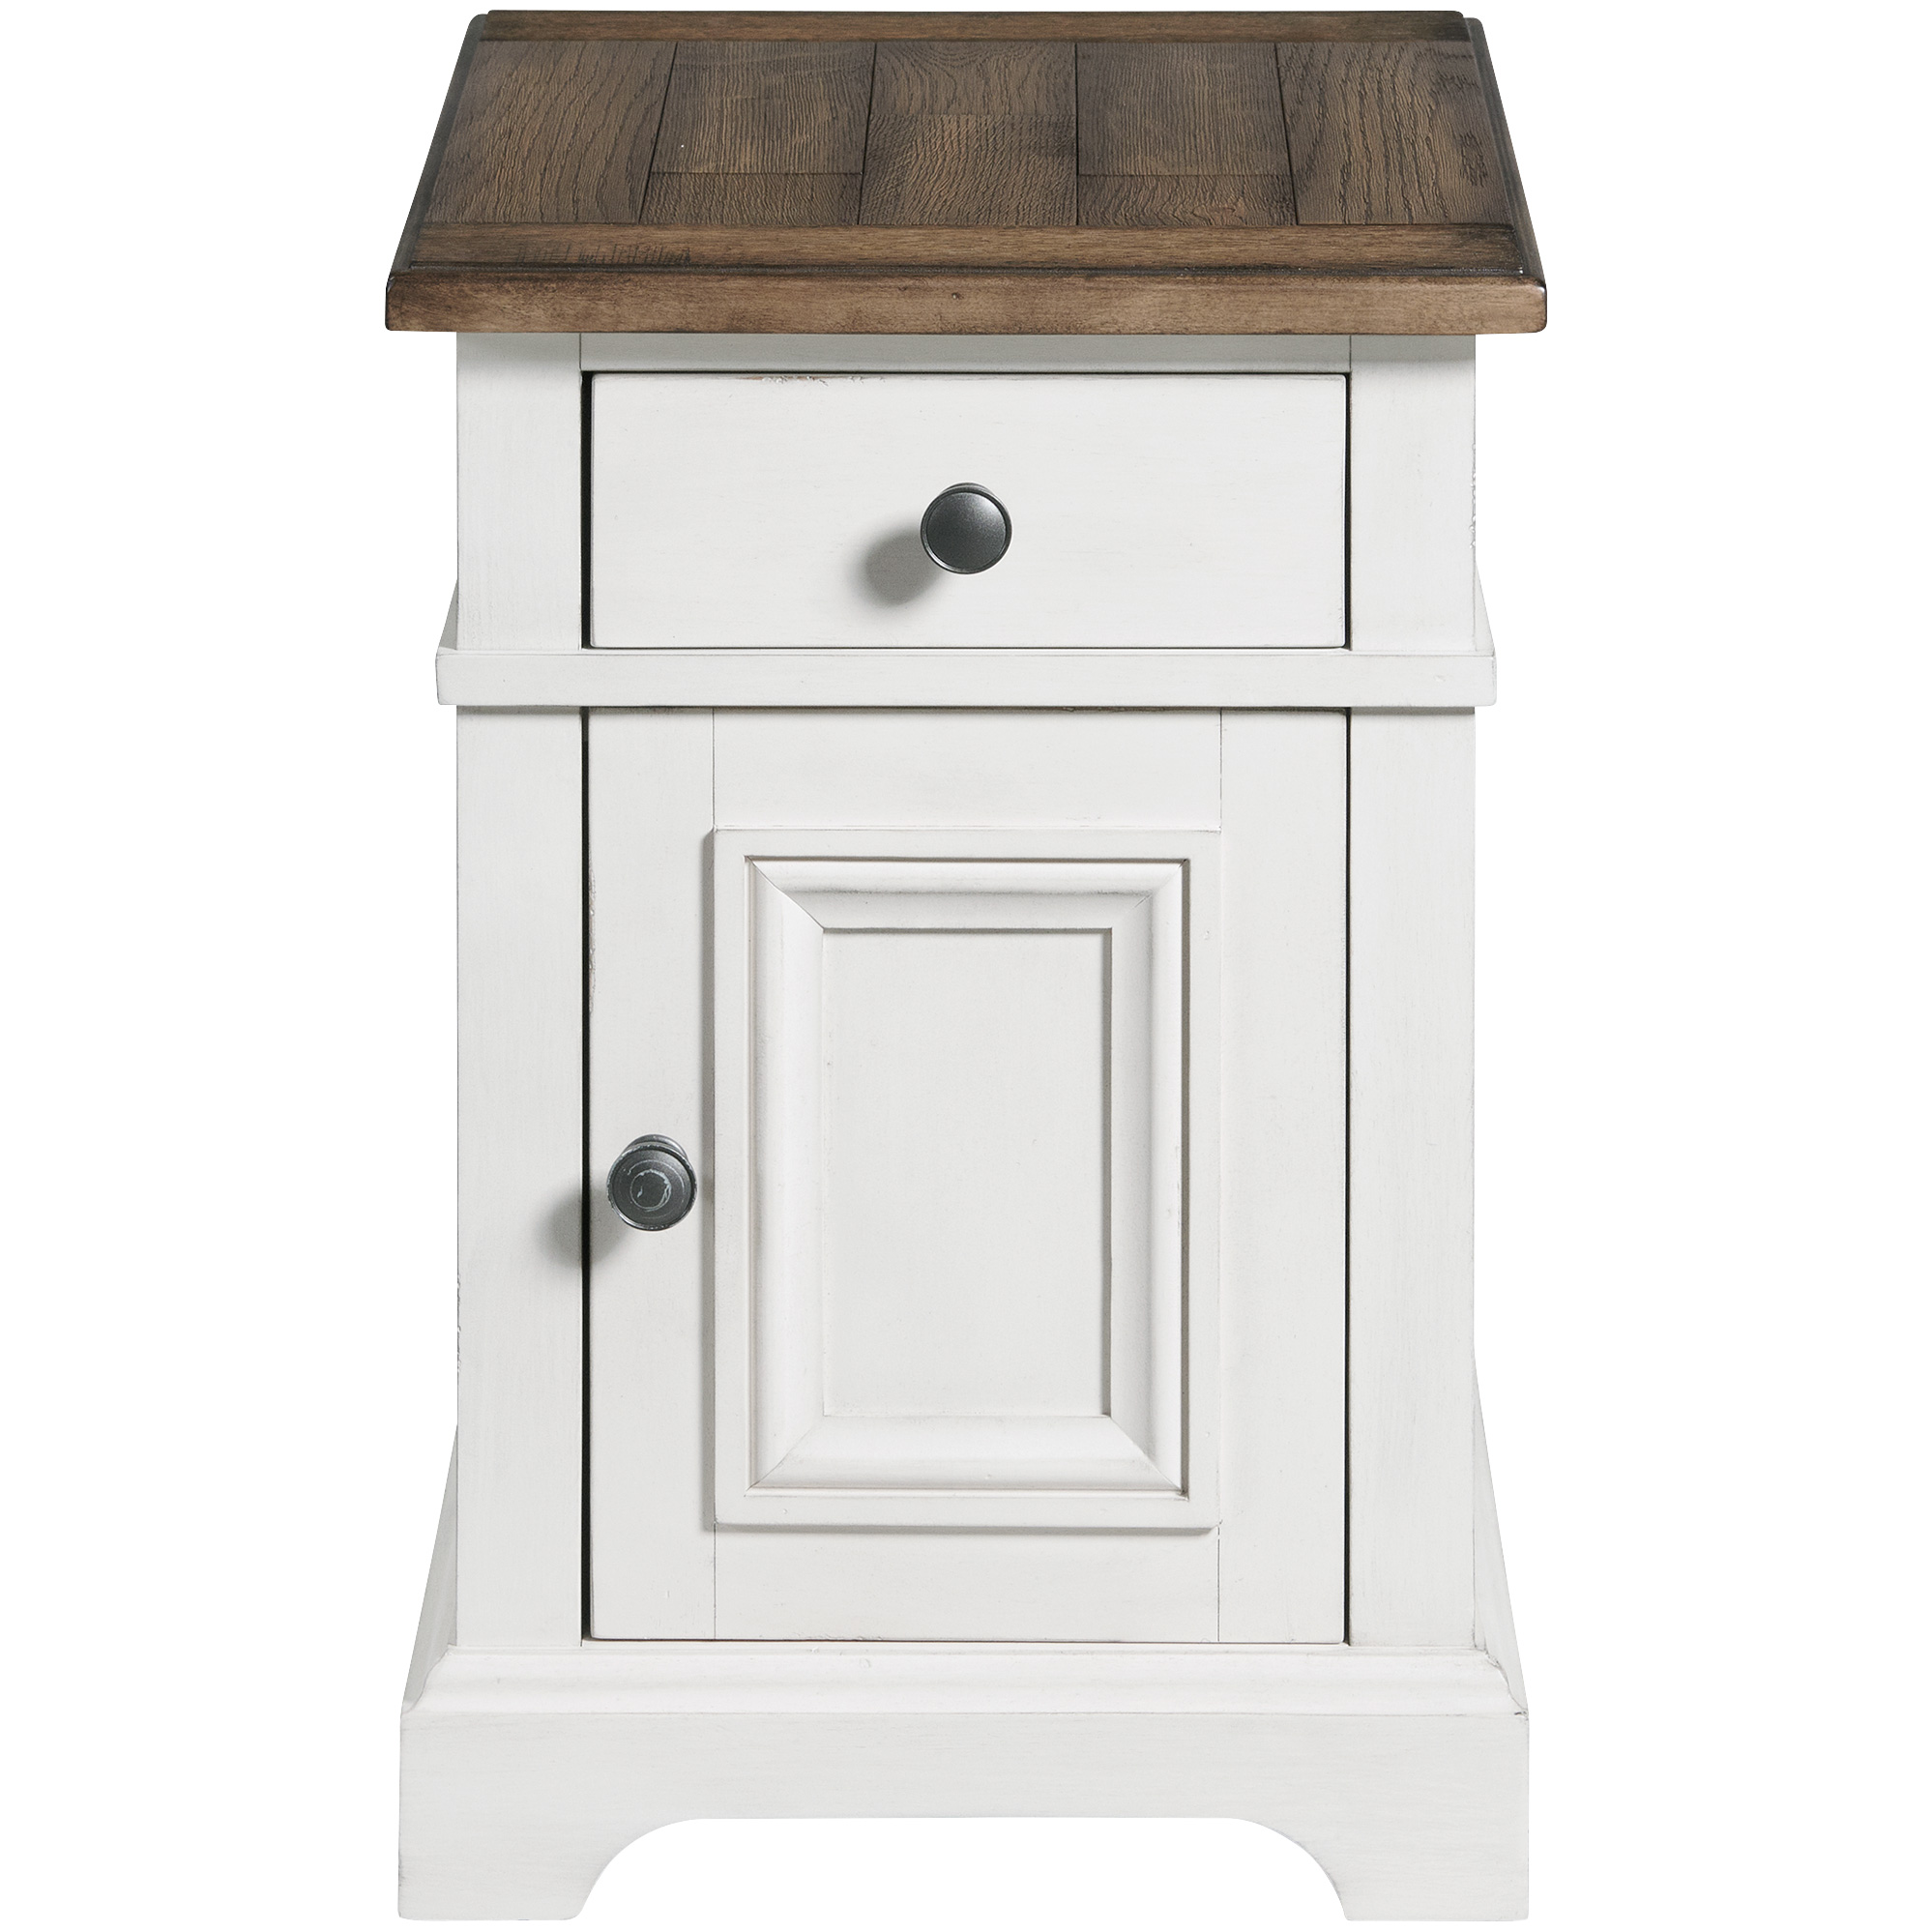 Intercon | Drake Rustic White and Stone Chairside Table